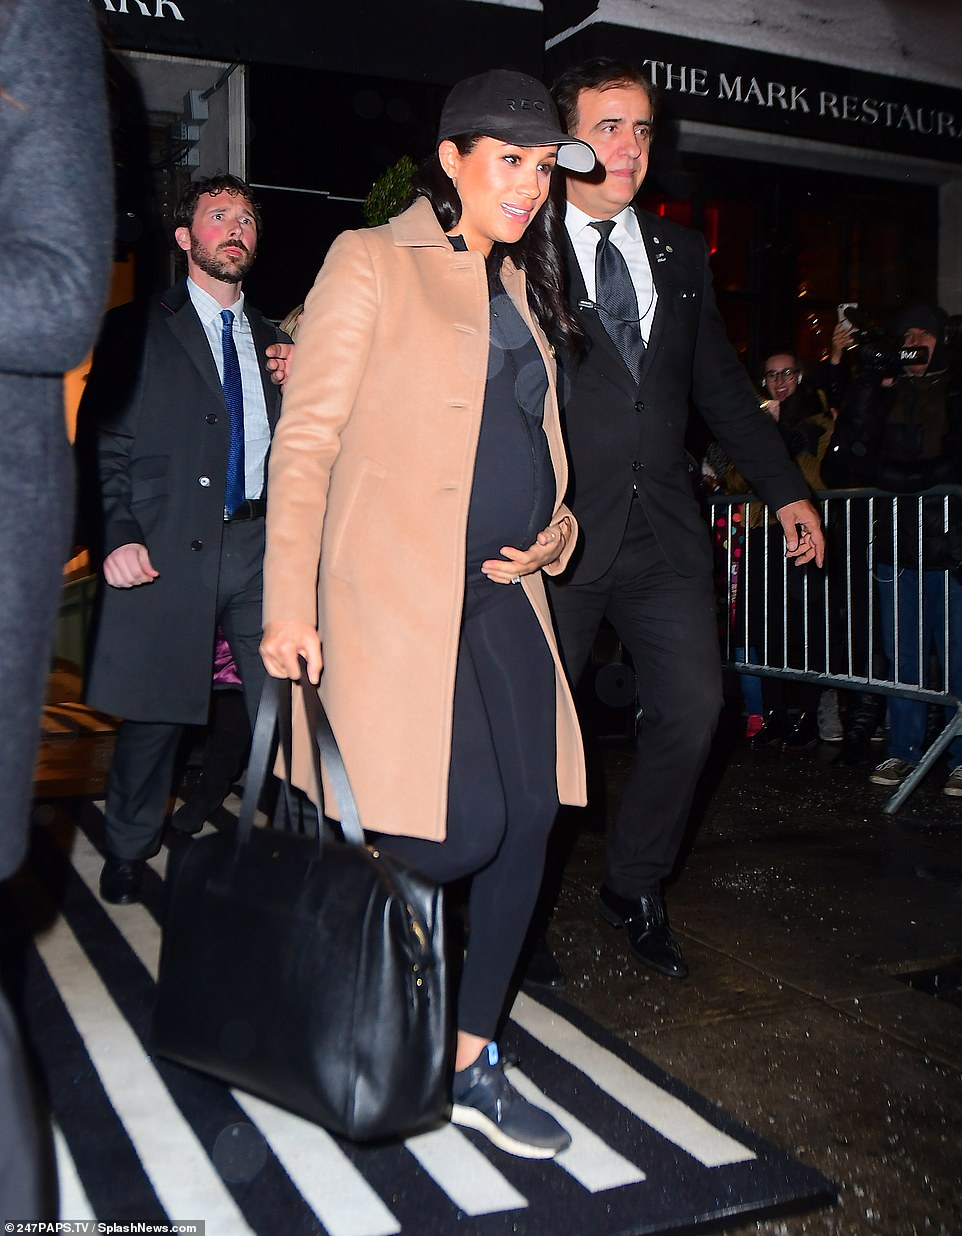 She's off! The pregnant duchess left the swanky Upper East Side hotel where her baby shower took place on Wednesday evening after the lavish soiree, cradling her bump as she made her way to a waiting SUV, and wearing the same tan coat